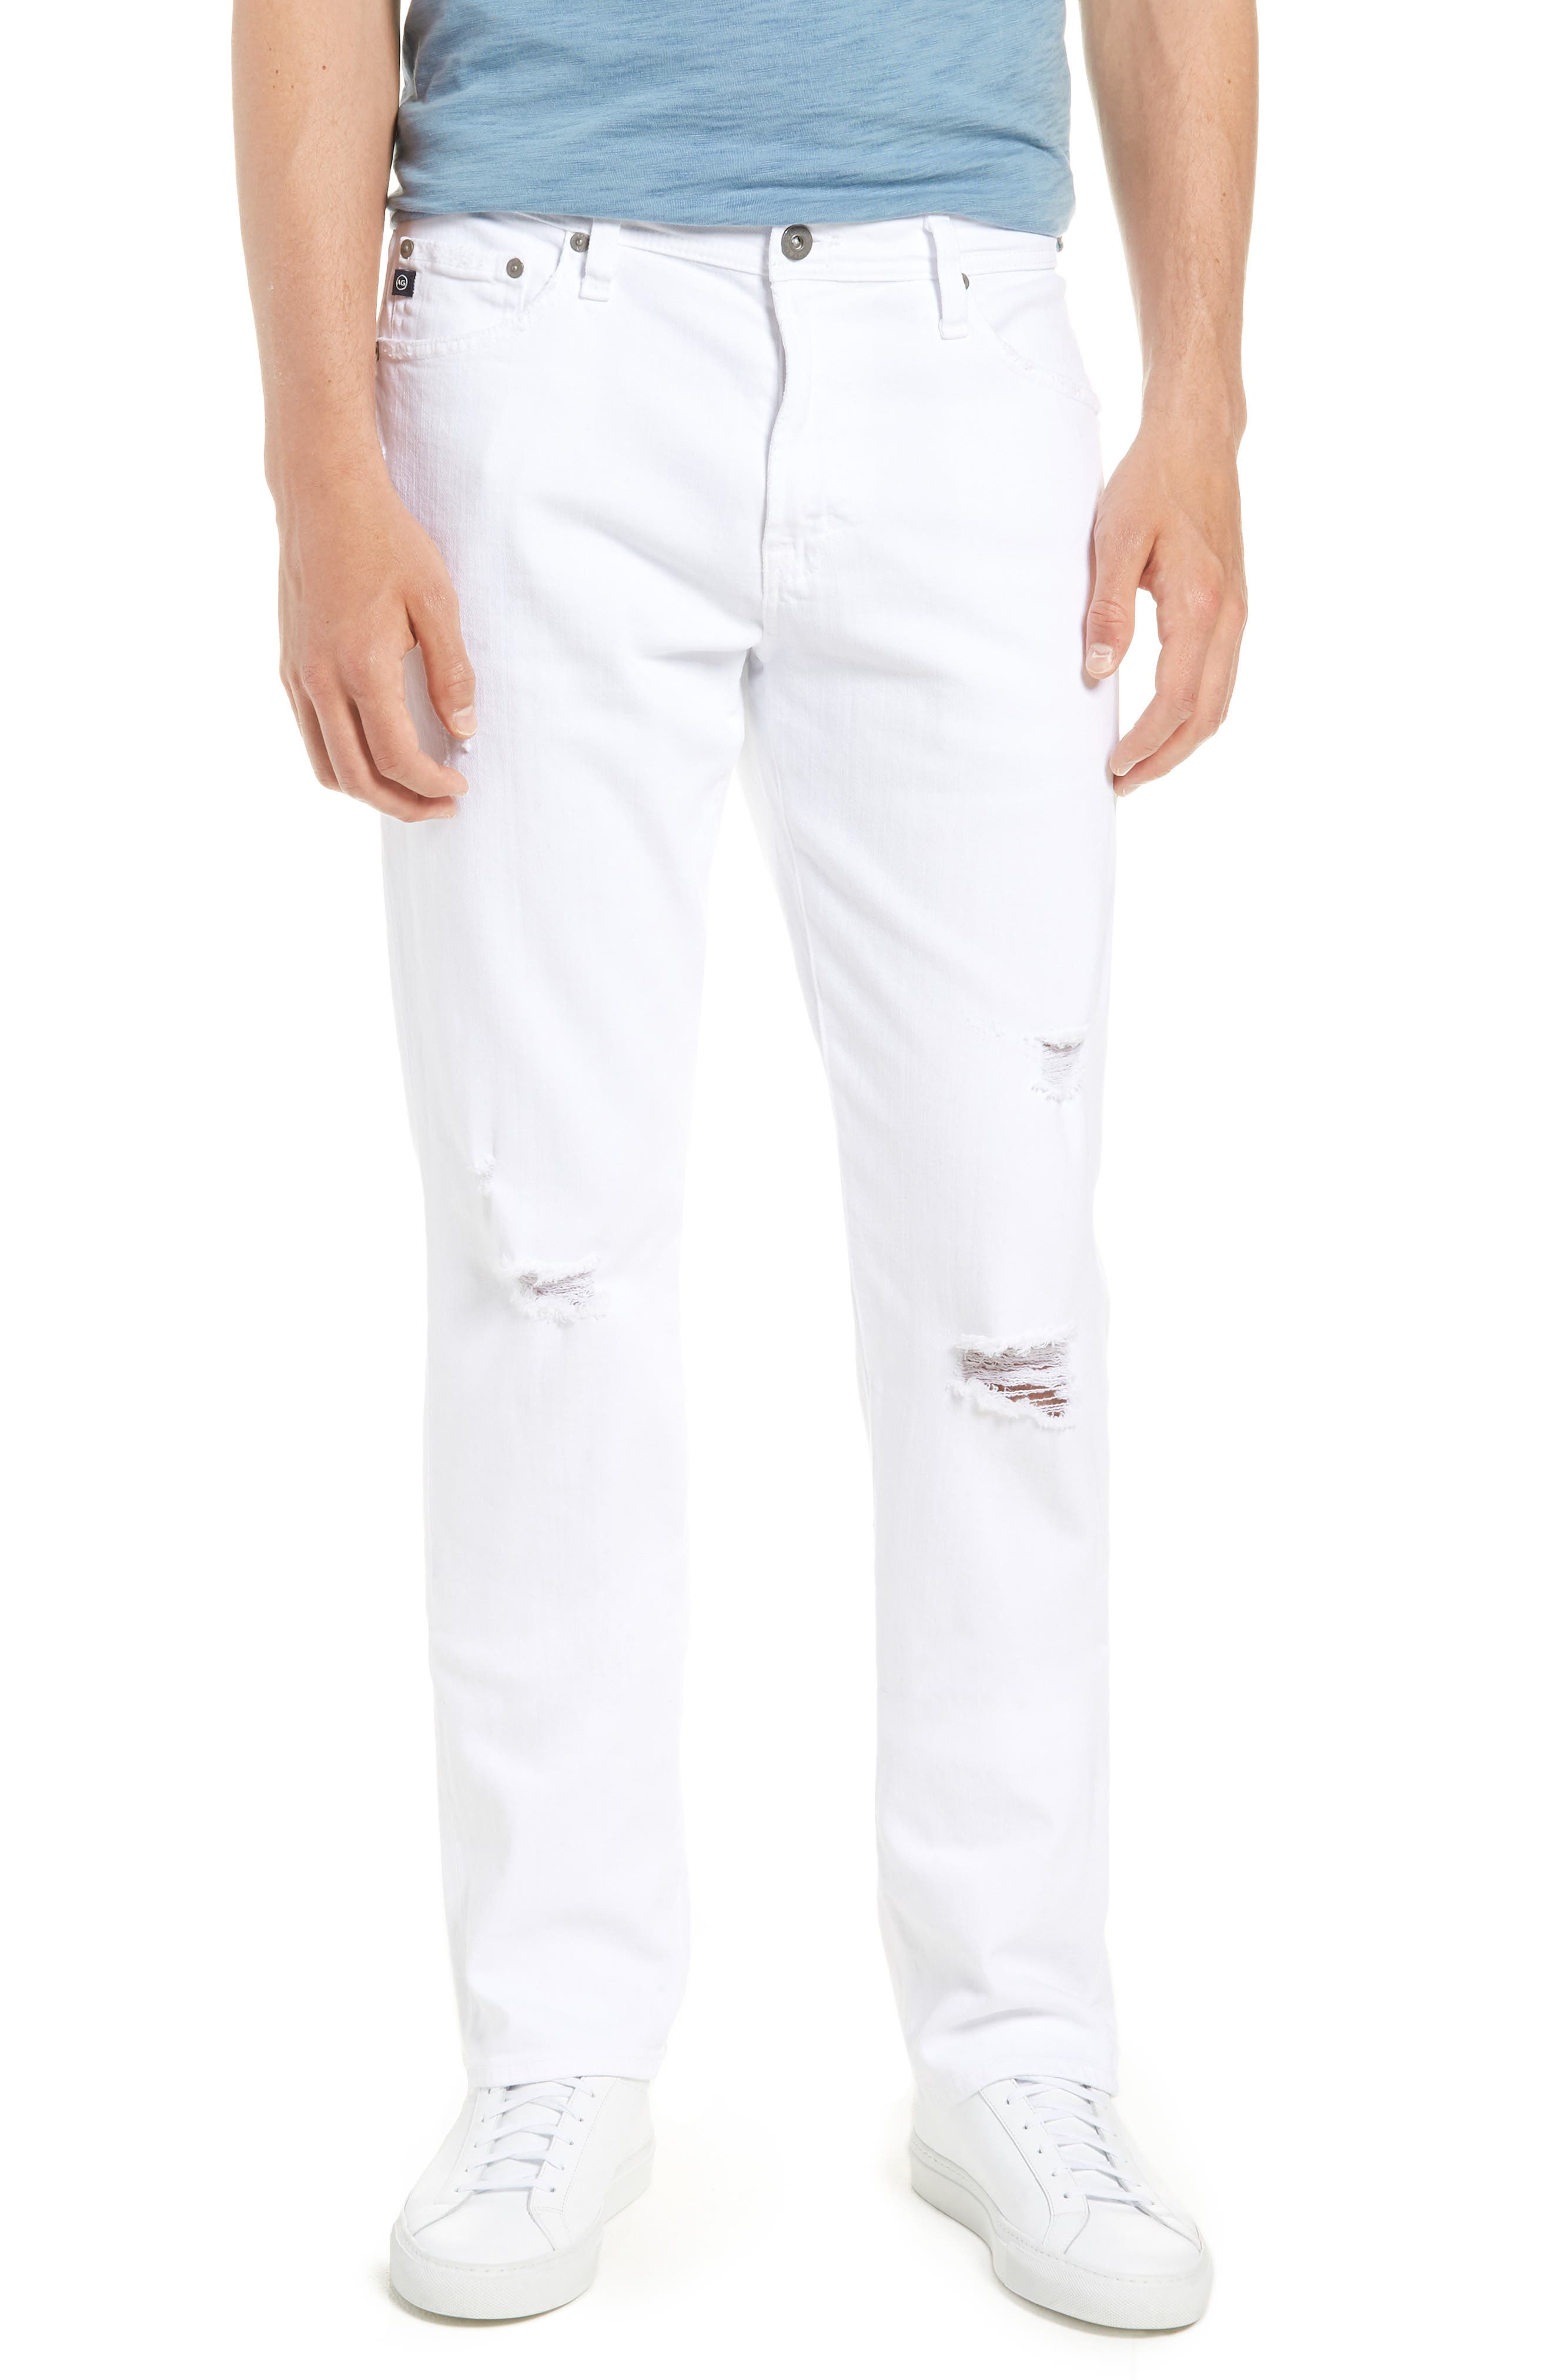 Everett Slim Straight Leg Jeans,                             Main thumbnail 1, color,                             White Crash